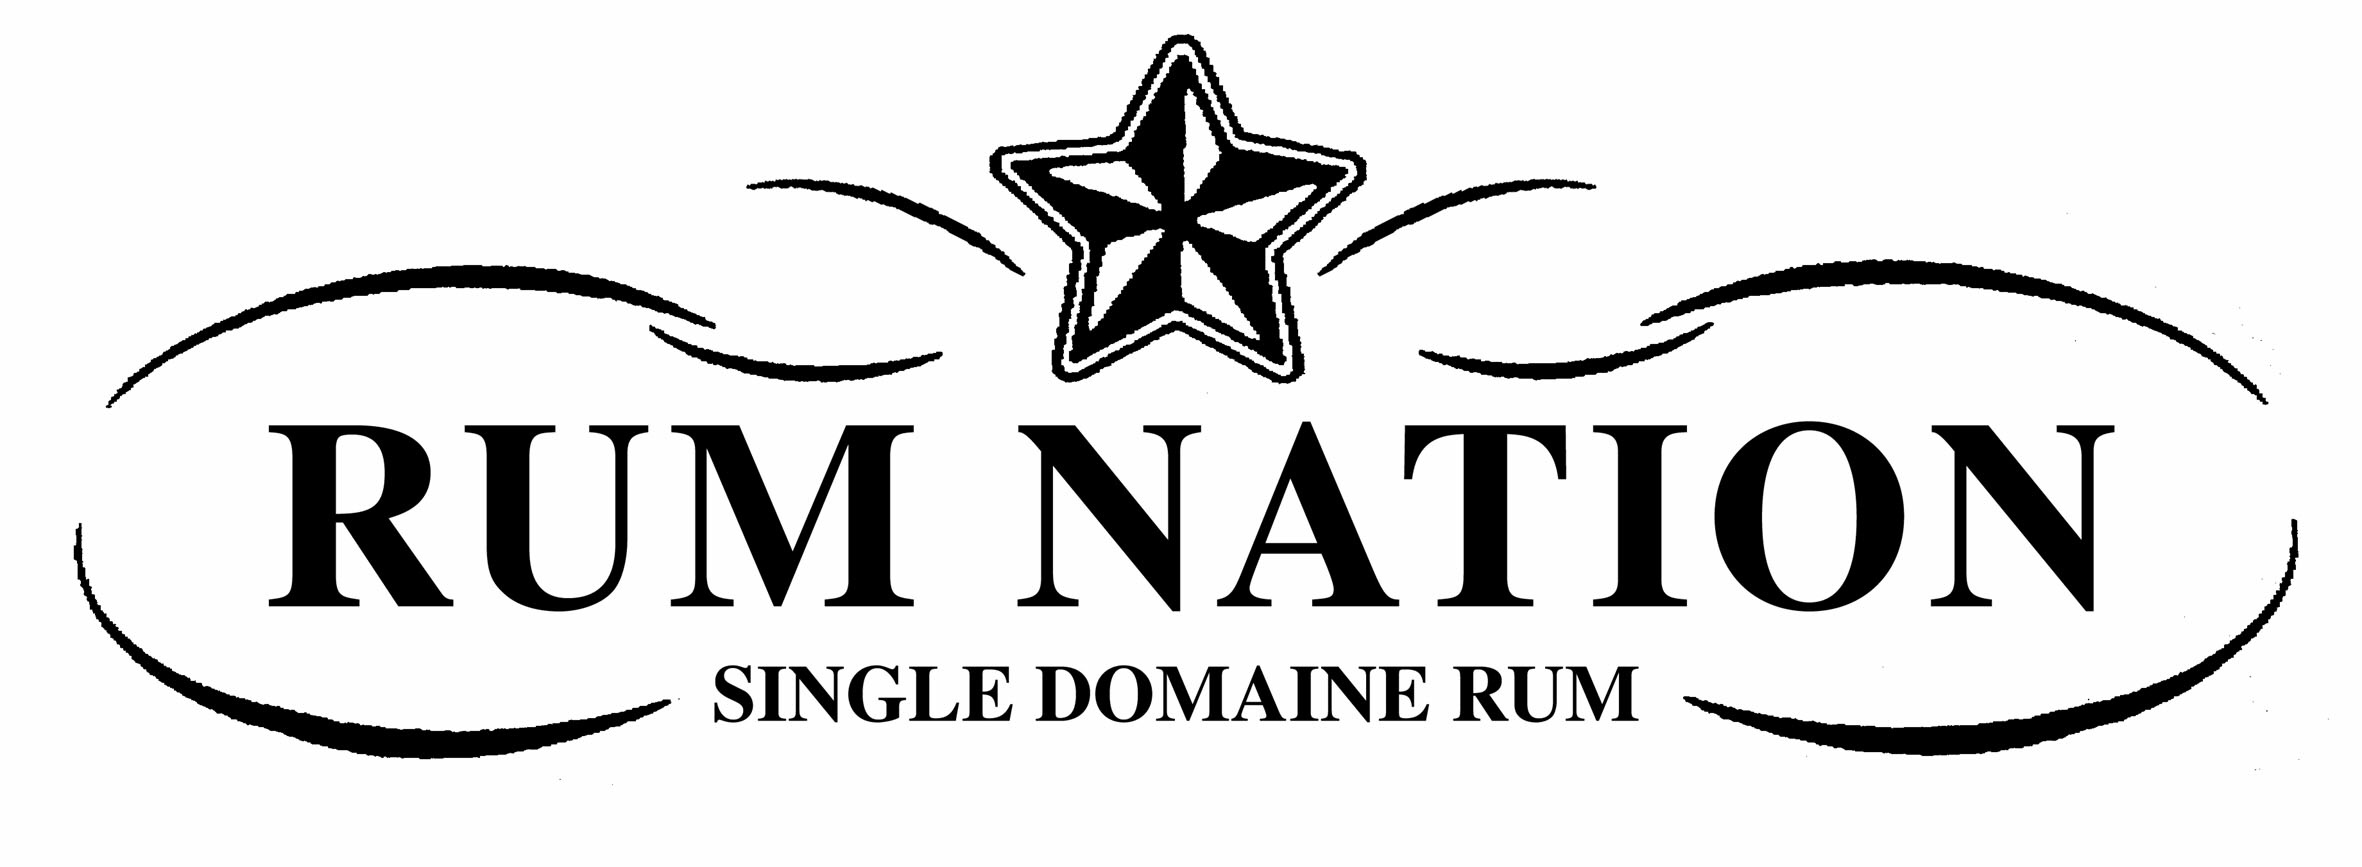 RUM NATION INTERNATIONAL A/S Søndergade 52 Frederiks Denmark – 7470 Karup J